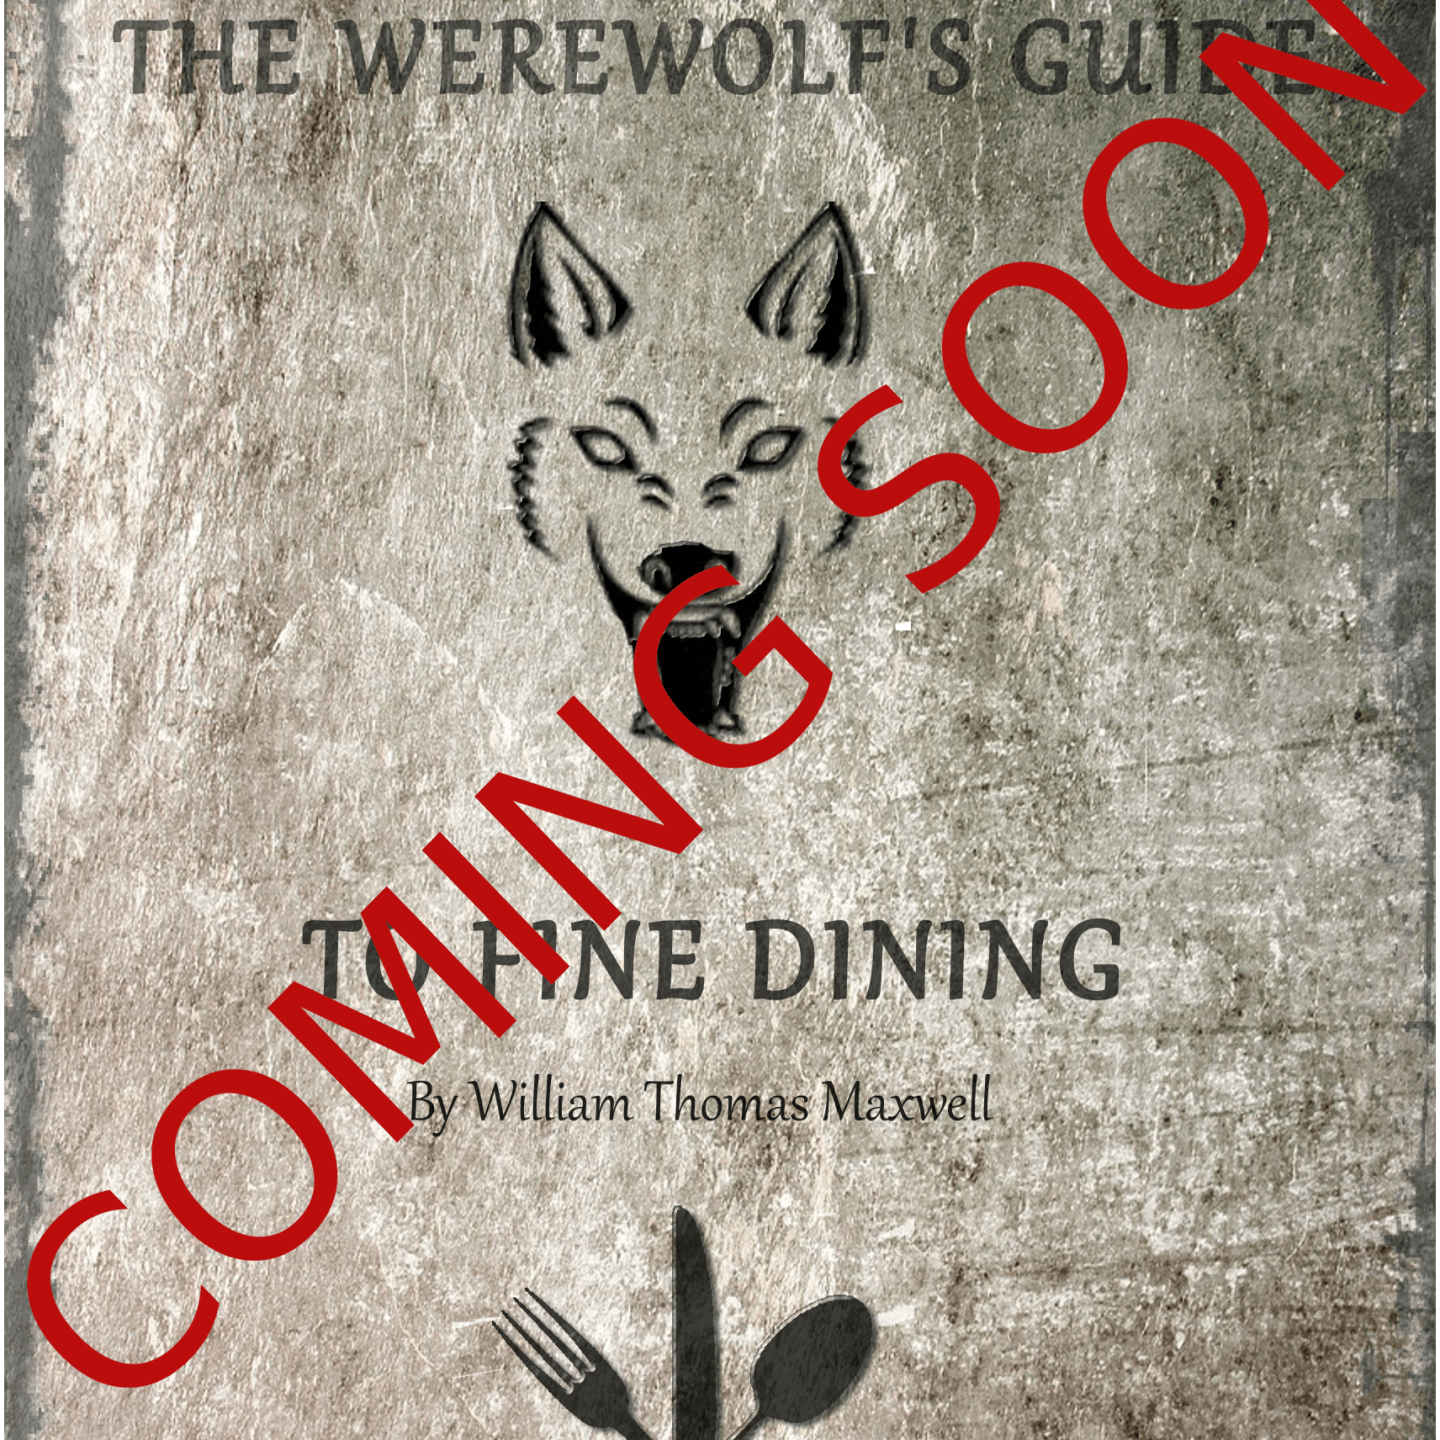 The Werewolf's Guide to Fine Dining